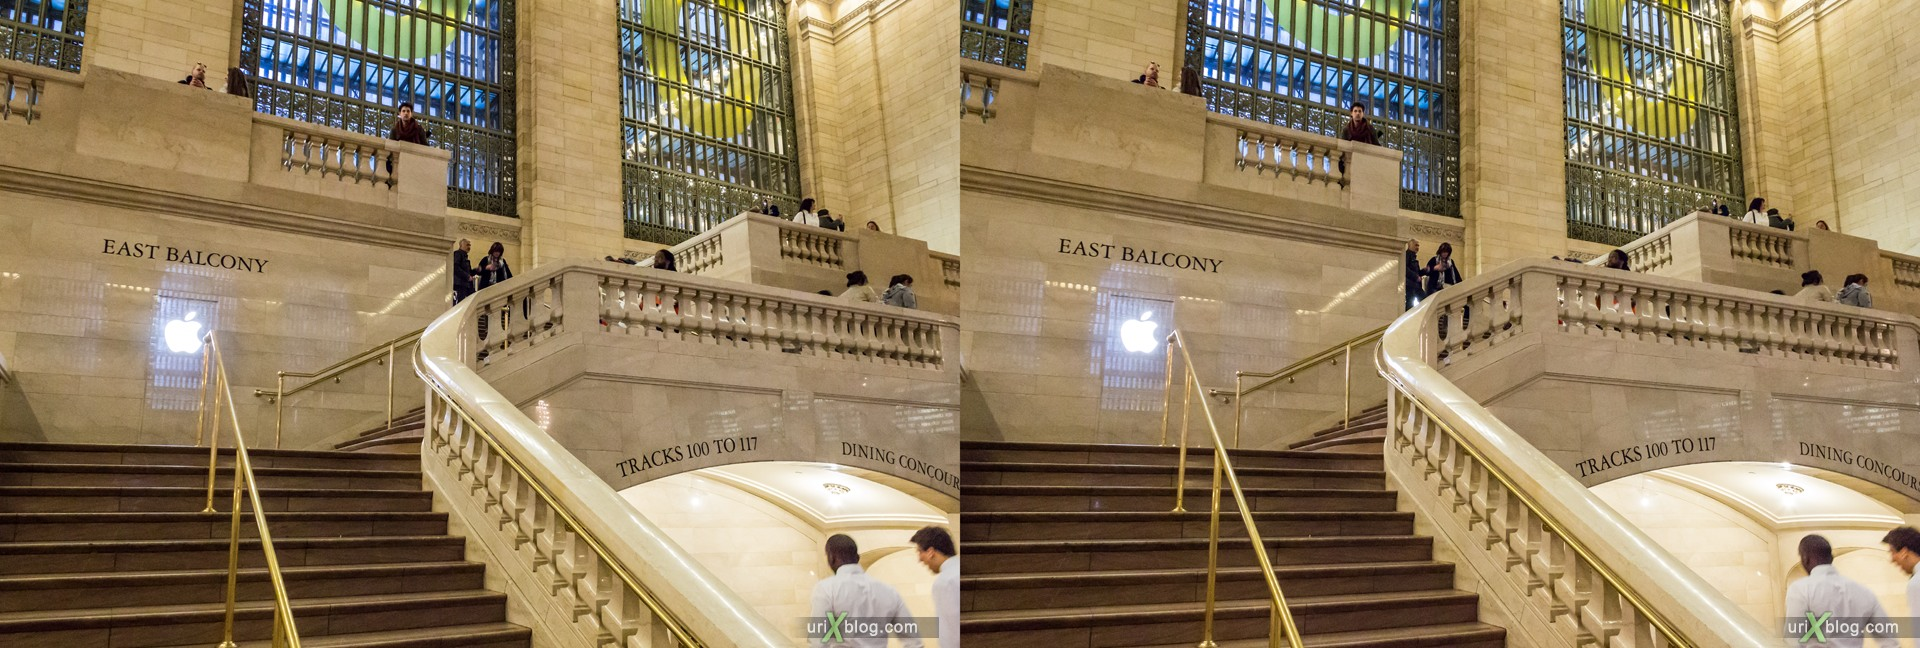 2013, Apple, Apple Store, Grand Central Terminal, NYC, New York, USA, 3D, stereo pair, cross-eyed, crossview, cross view stereo pair, stereoscopic